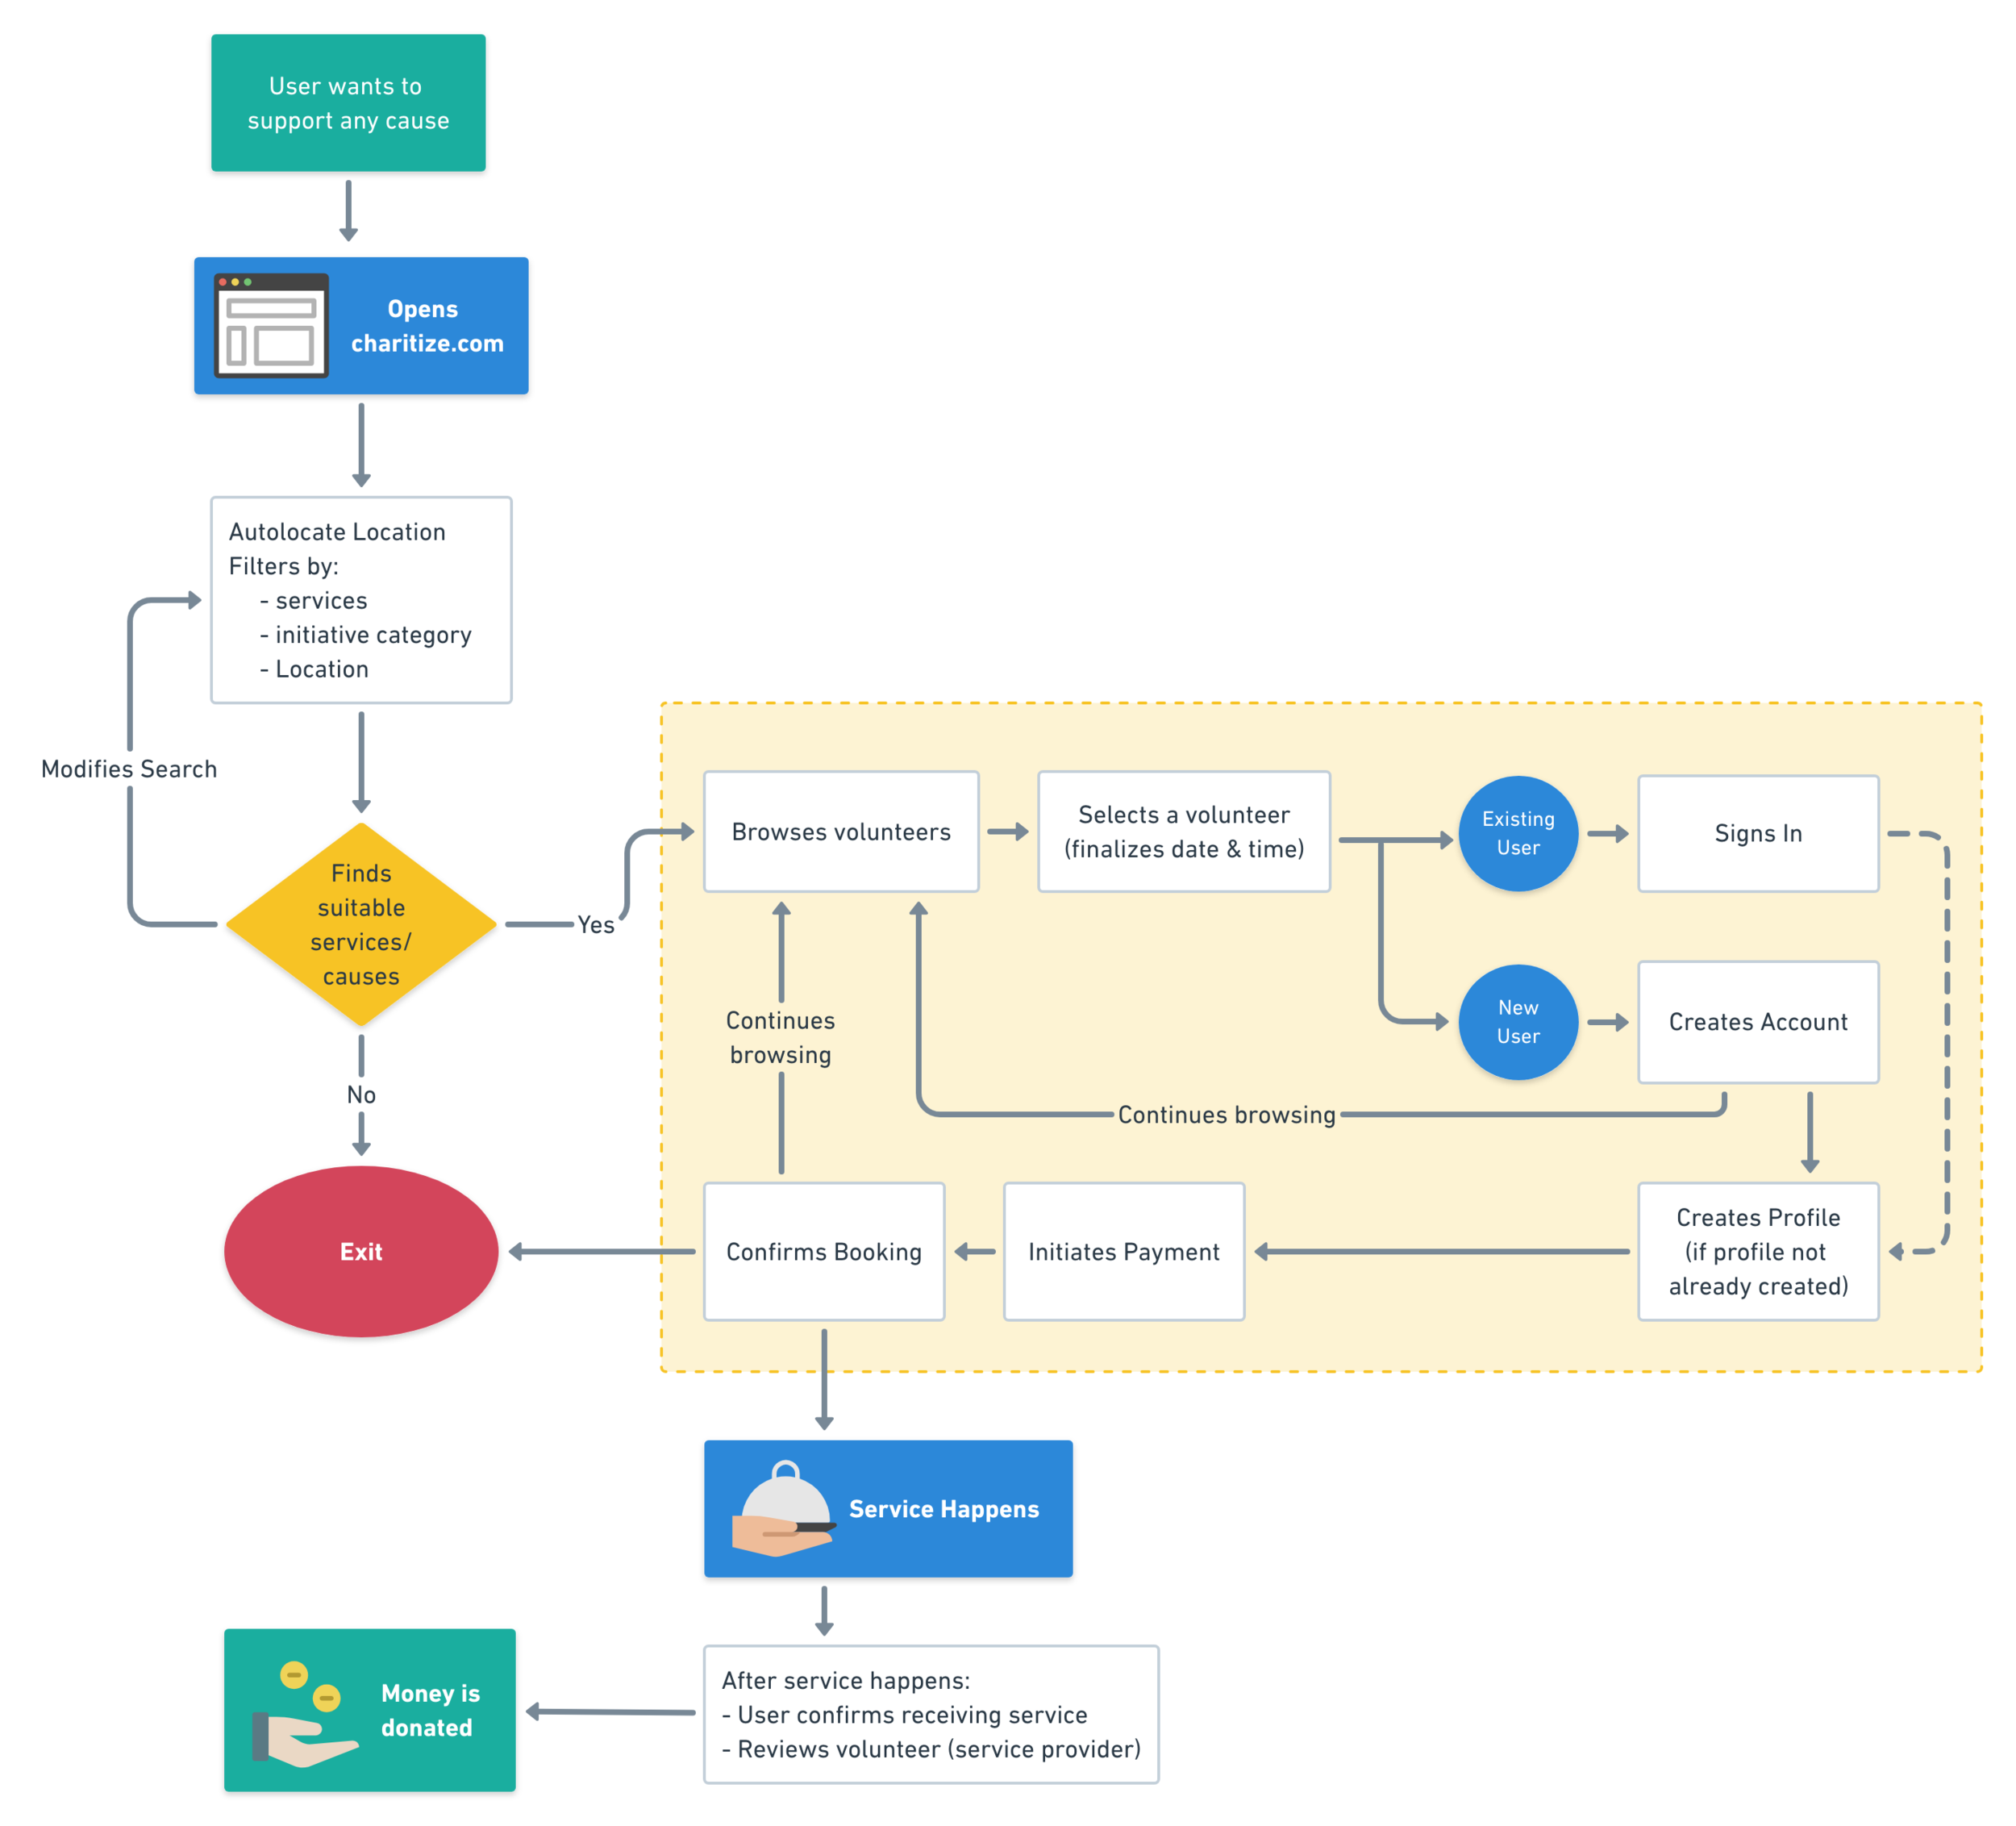 Charitize Buyer Flow@2x (3).png